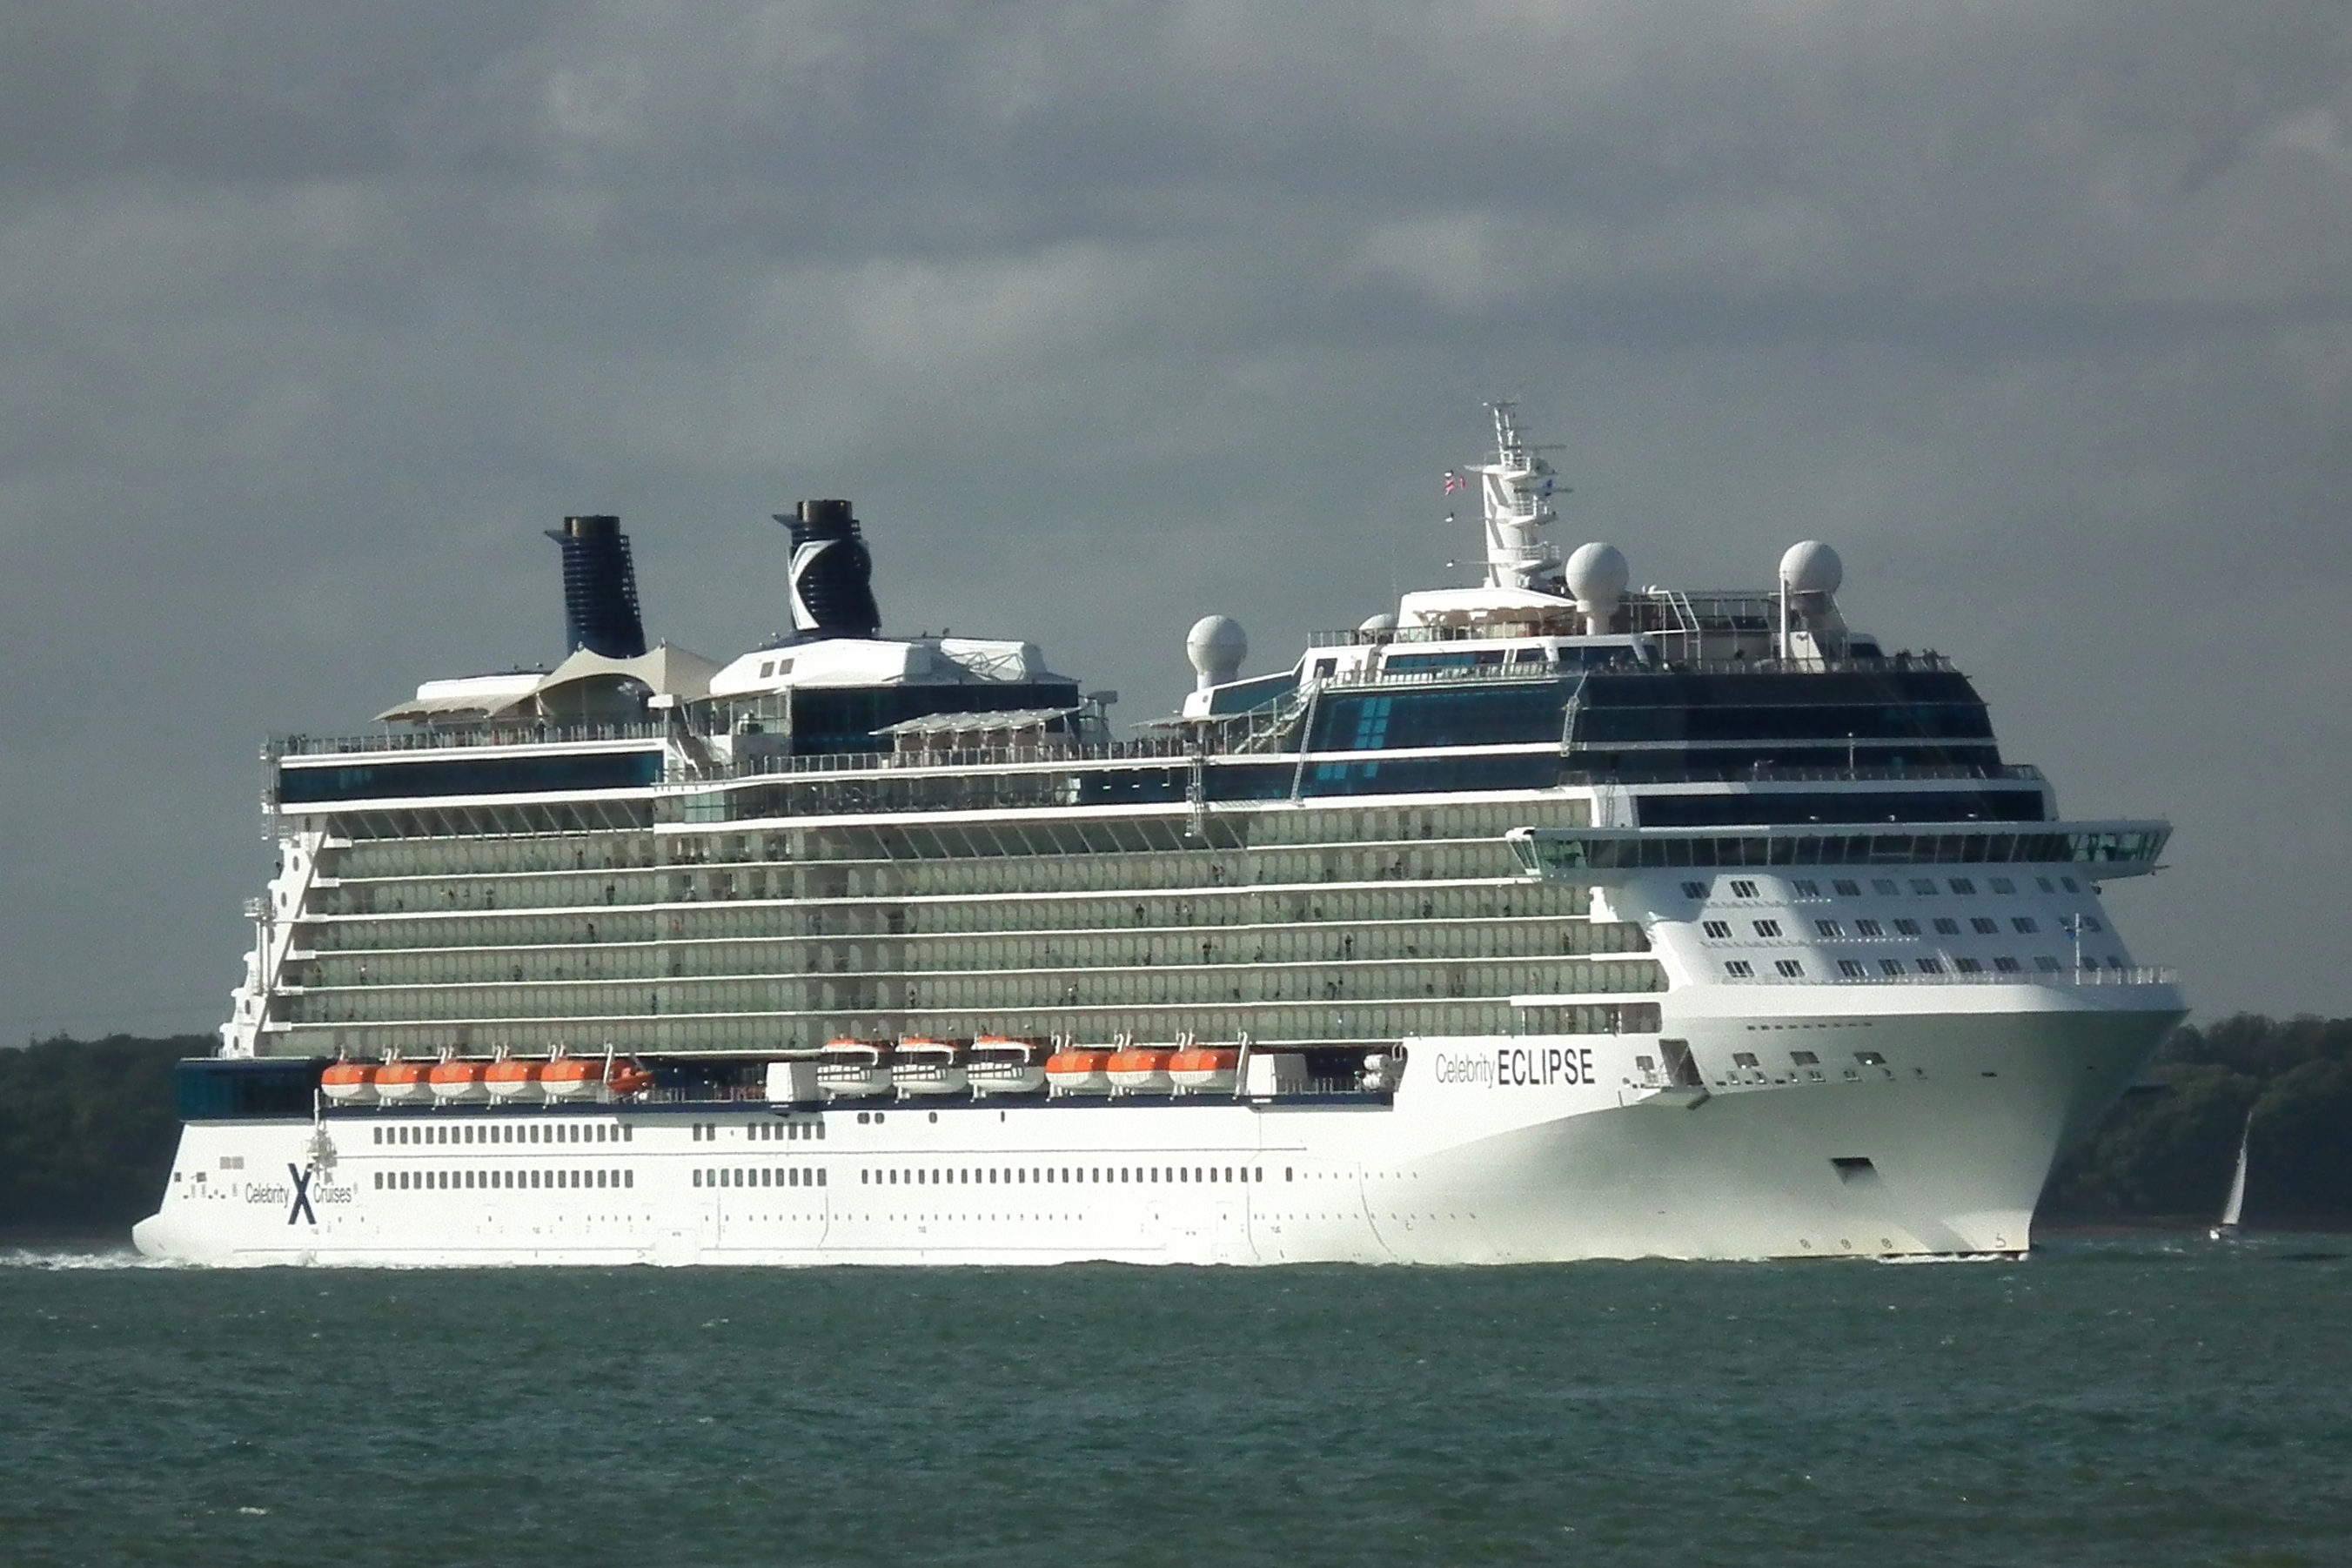 Celebrity Eclipse Cruise Ship Pictures 2019 - Cruise Critic